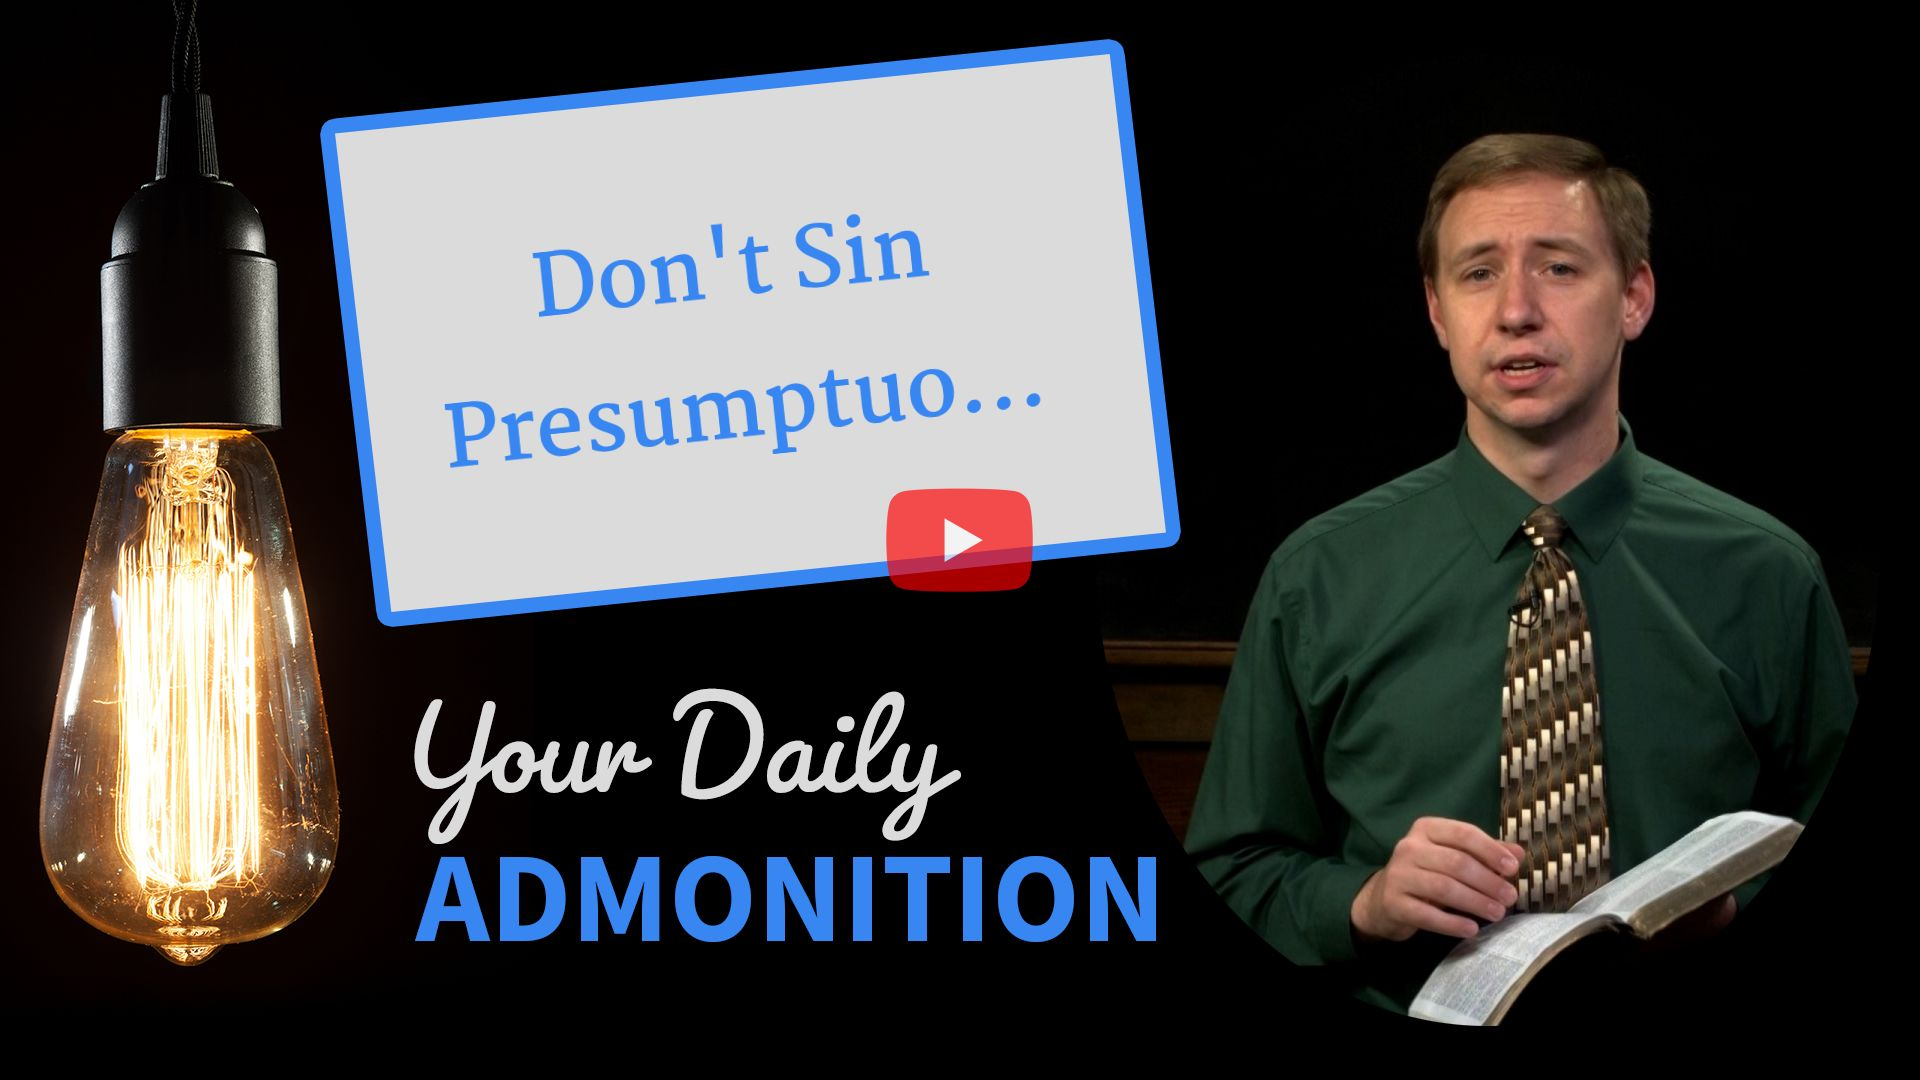 Don't Sin Presumptuously